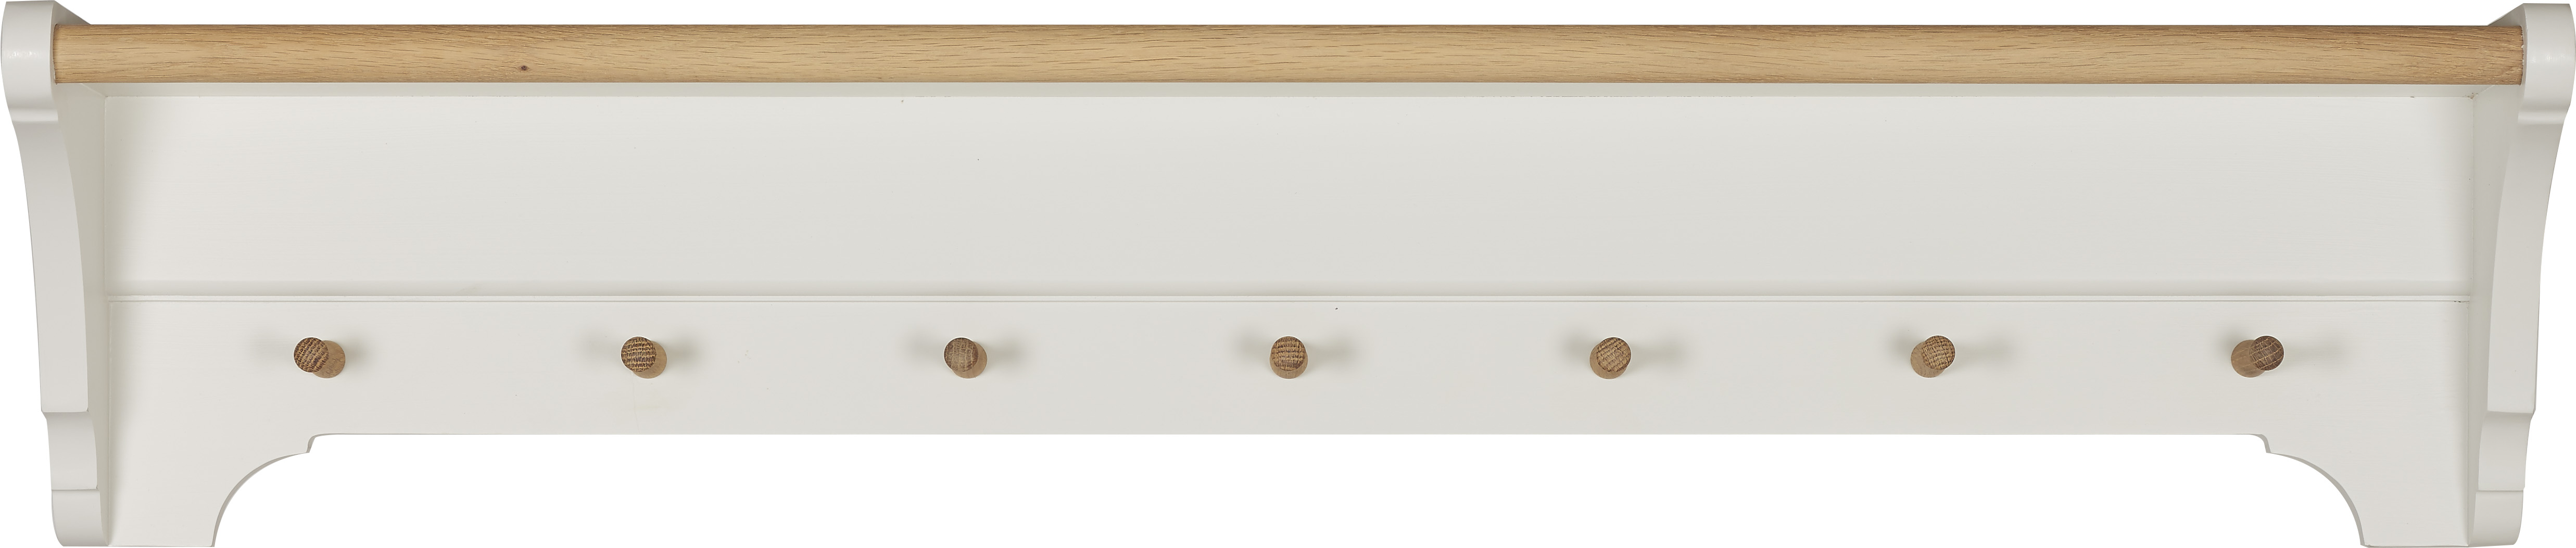 Chichester Coat Rack, 7 Pegs